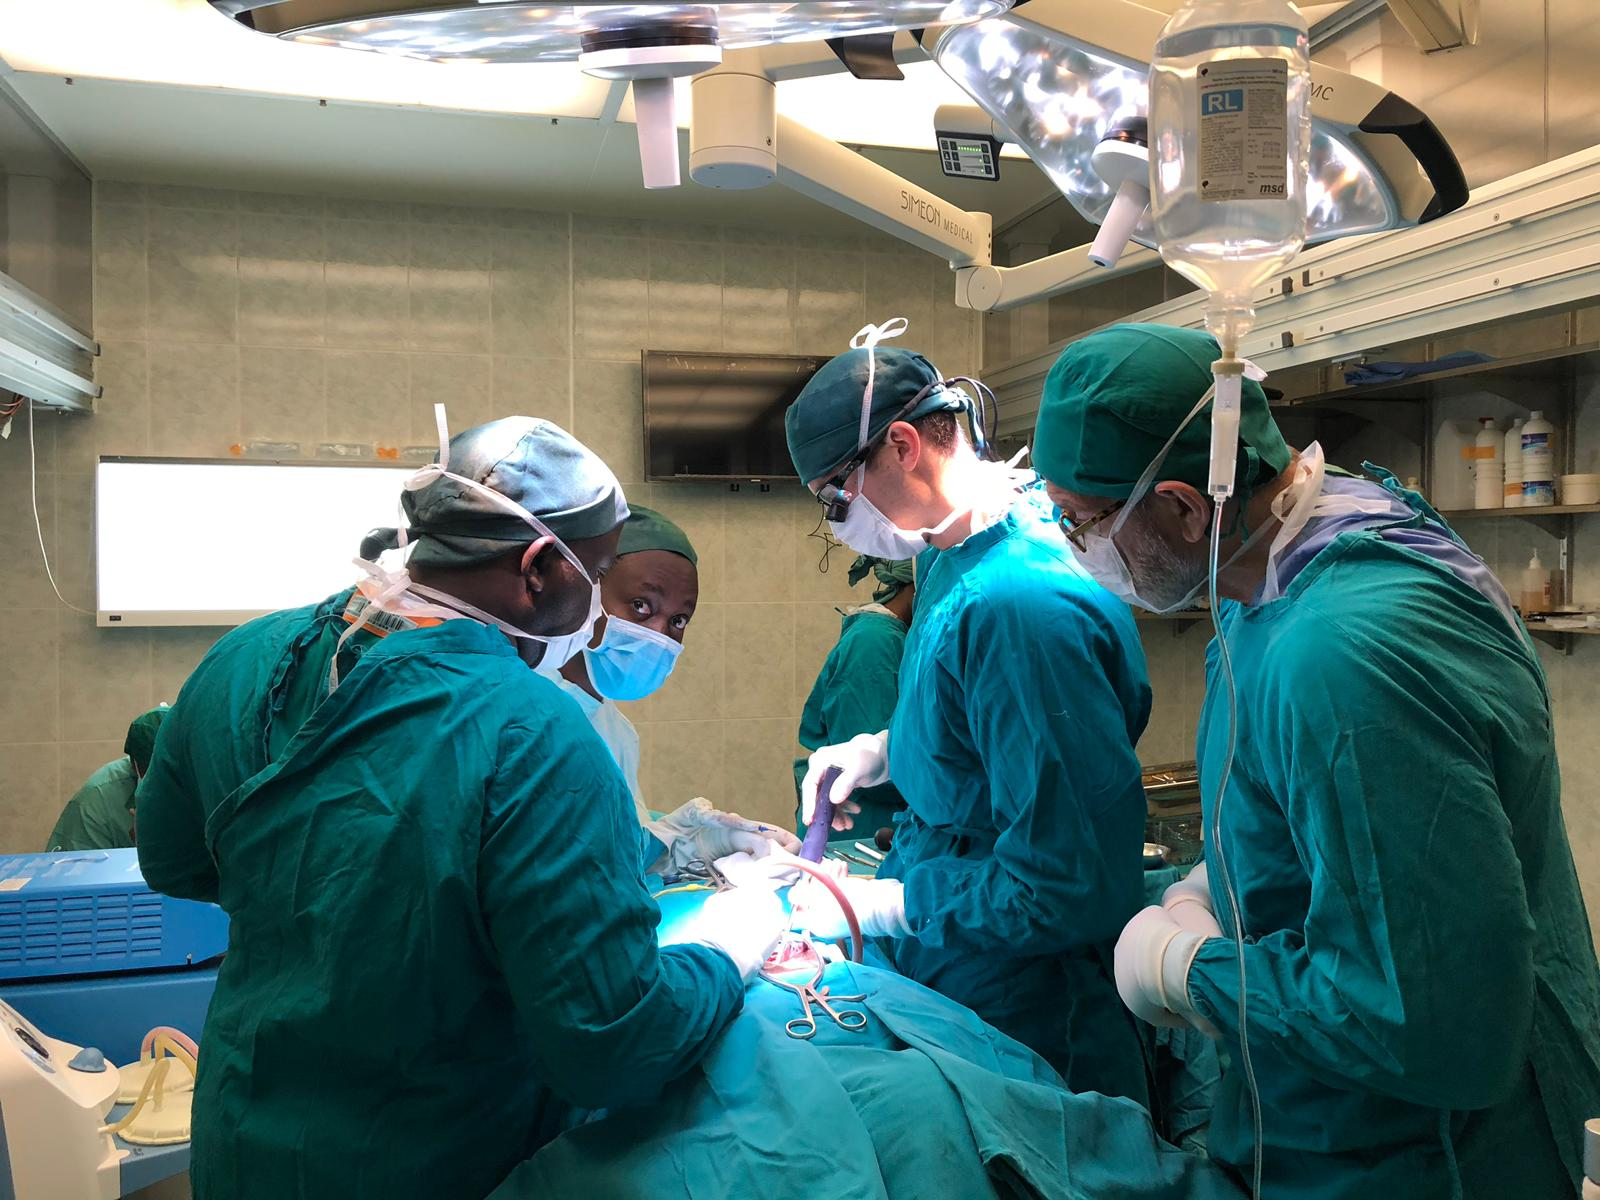 vising surgeons from USA teaching us spinal fusion